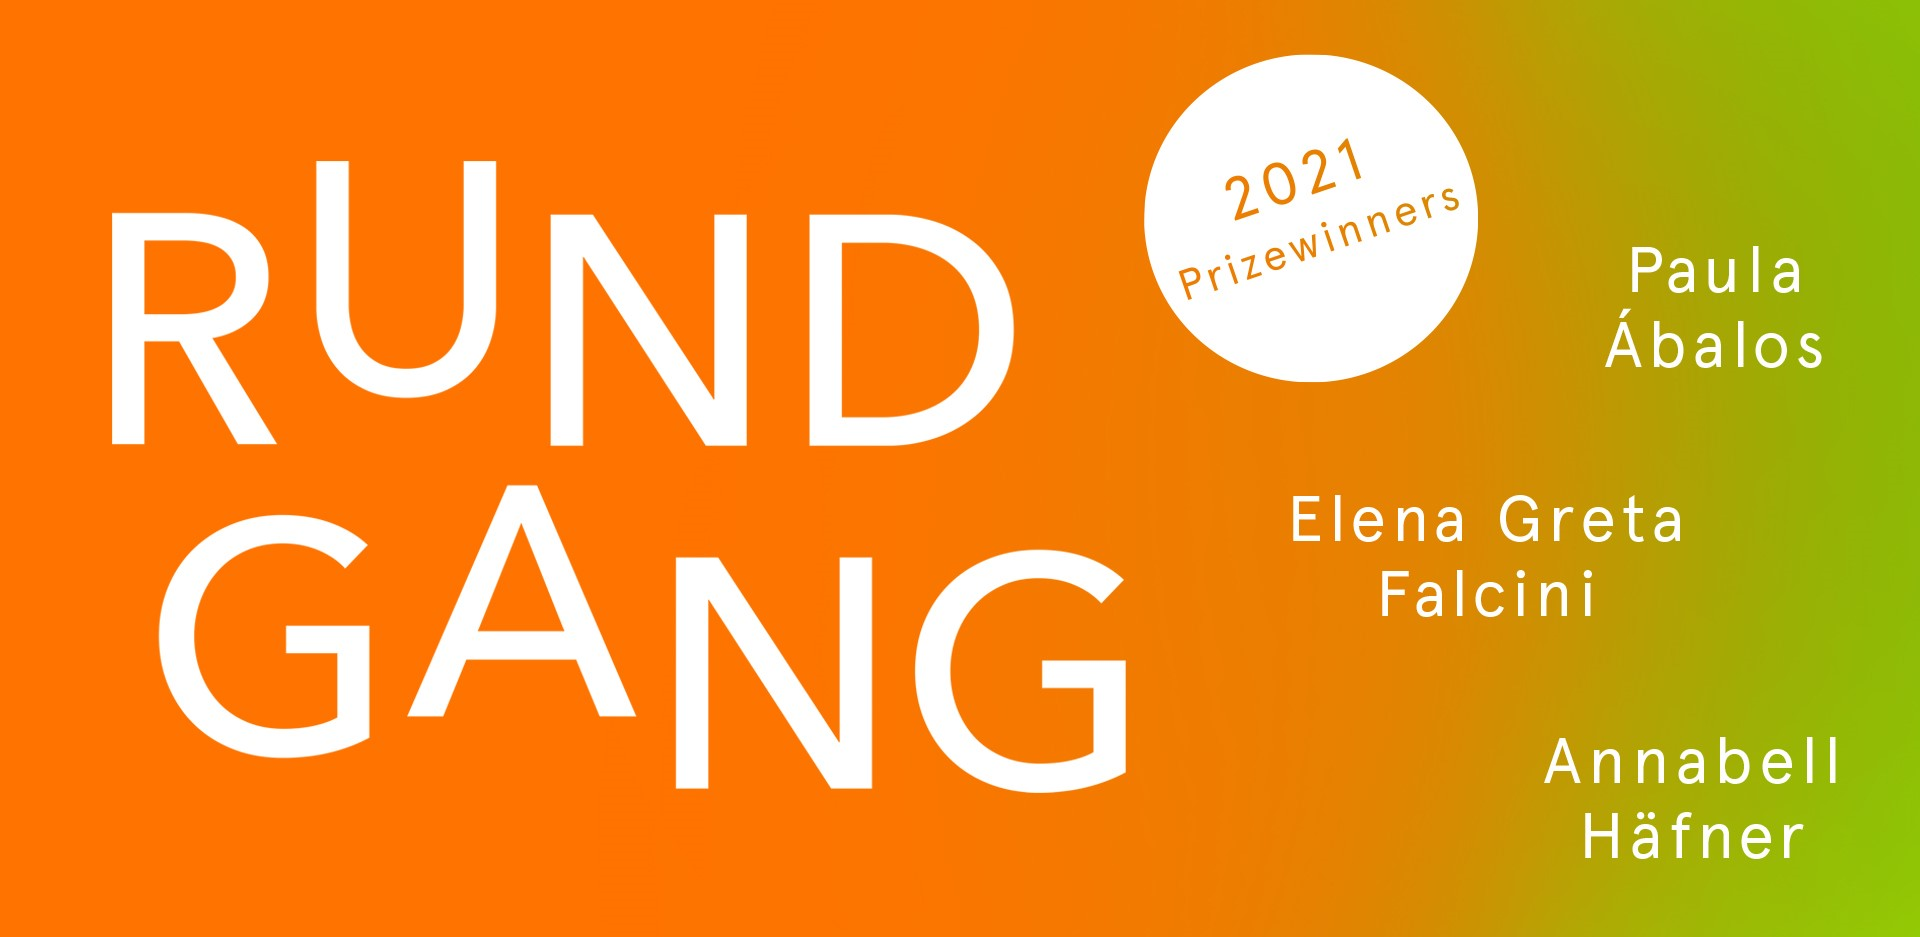 Online Rundgang 50Hertz Exhibition Goes Live on 12 May 2021